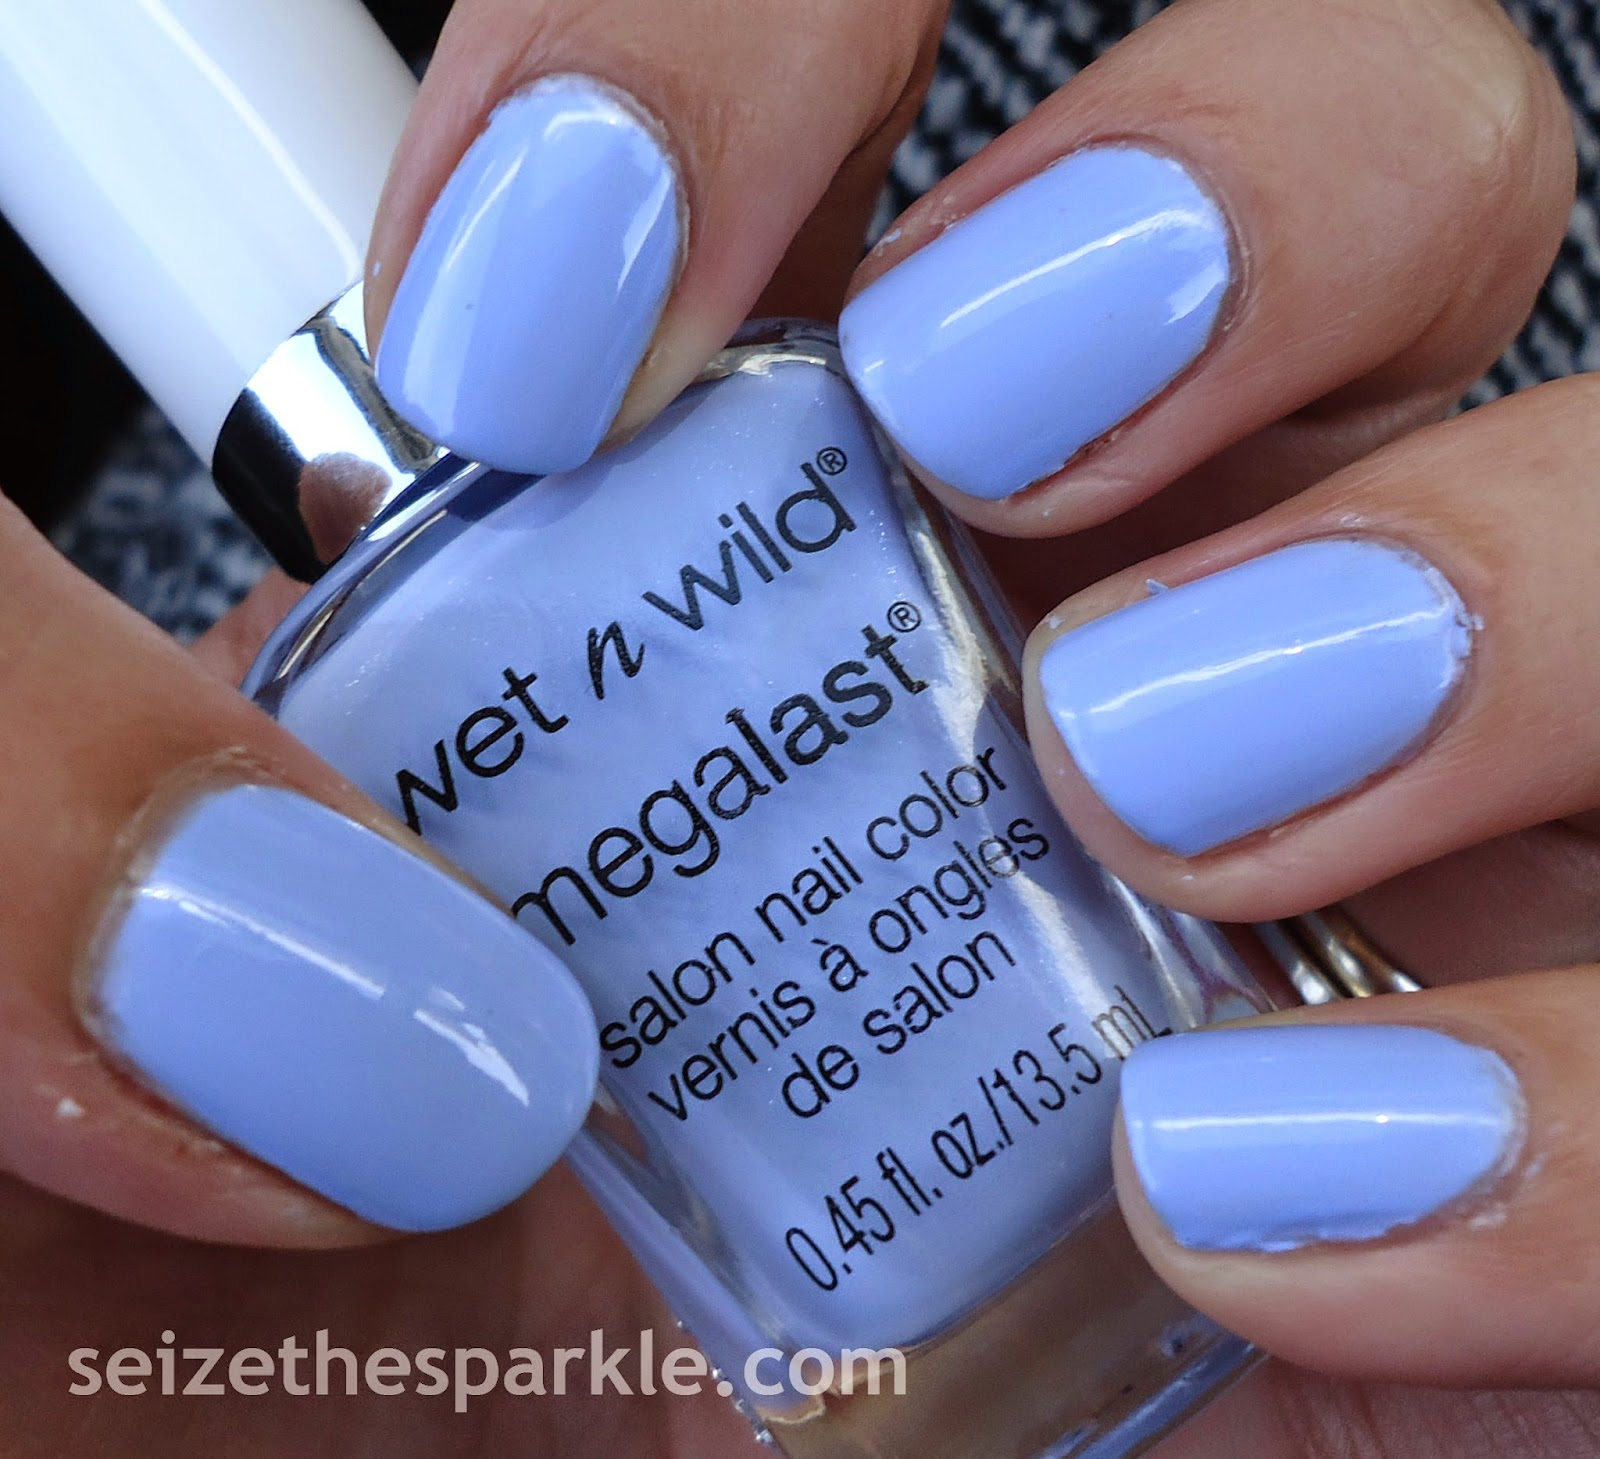 Wear Skinny Jeans by Wet n Wild